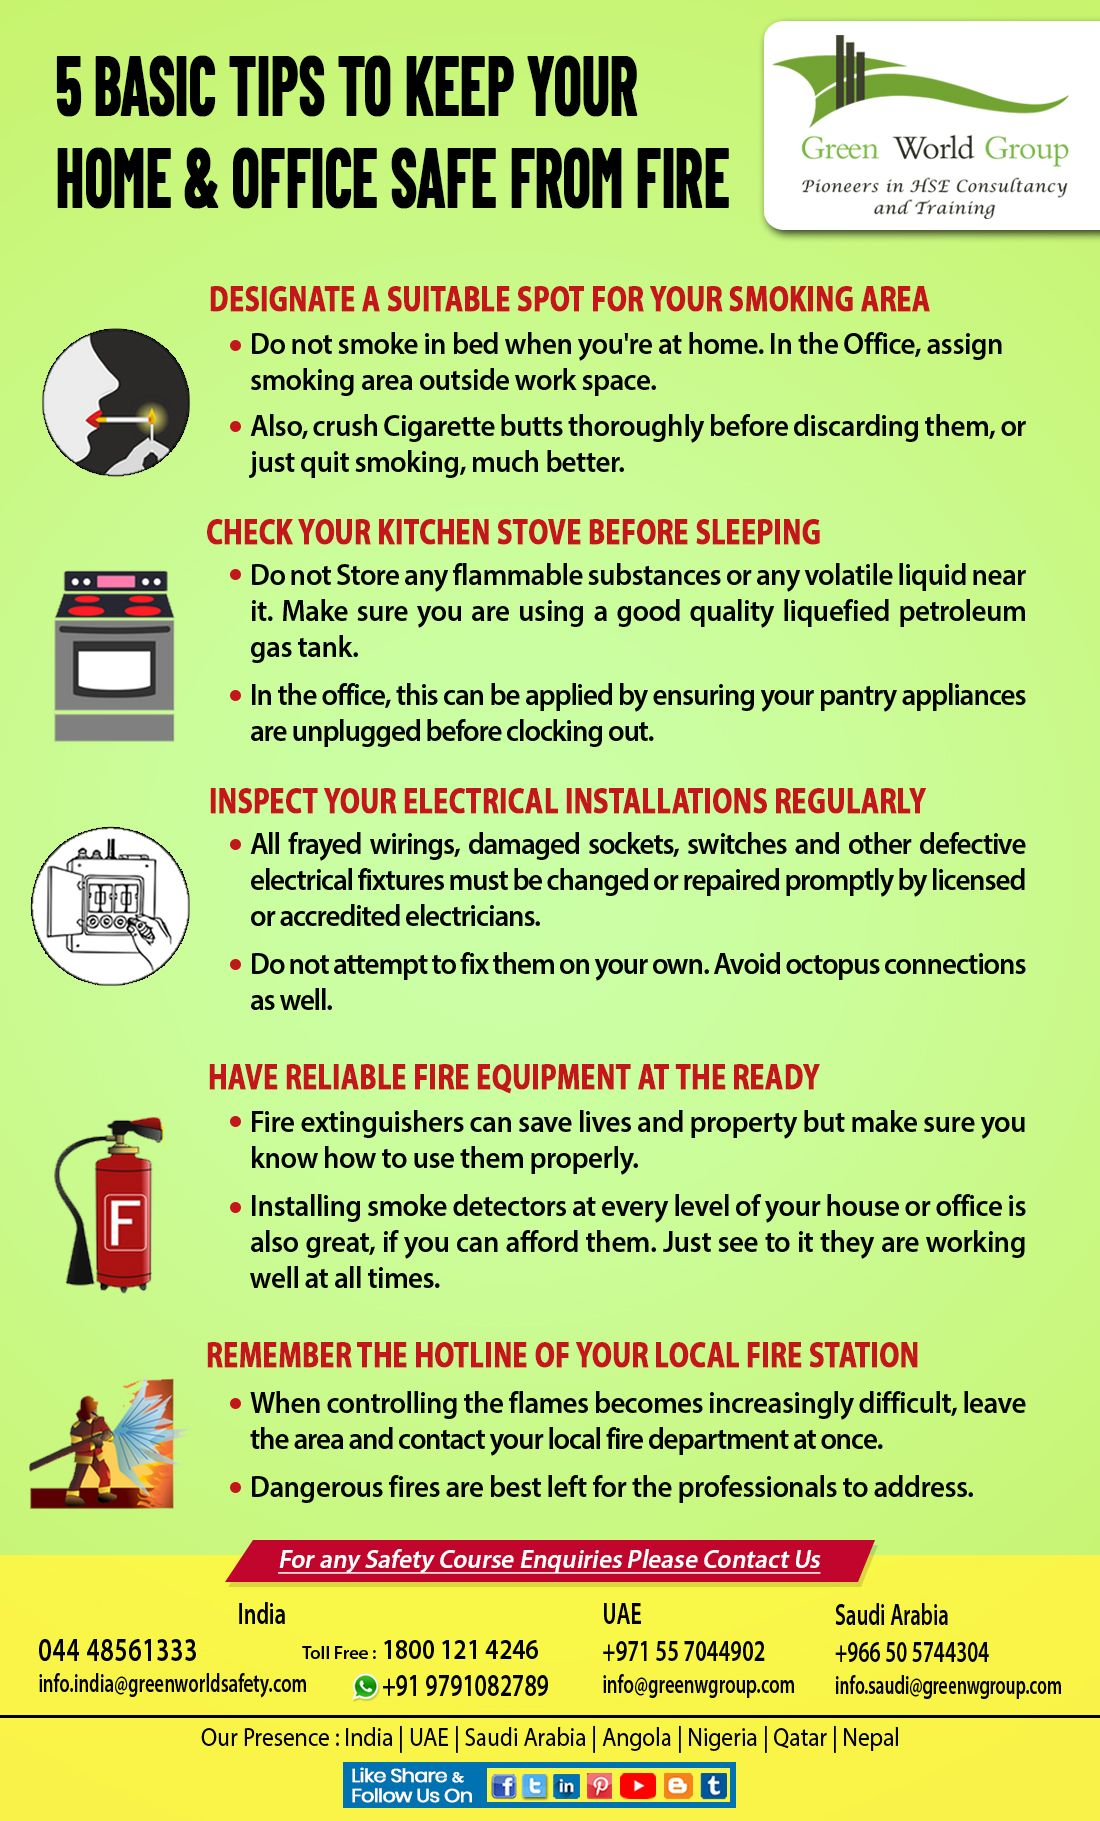 5 Basic Tips to Keep Your Home & Office Safe from Fire in